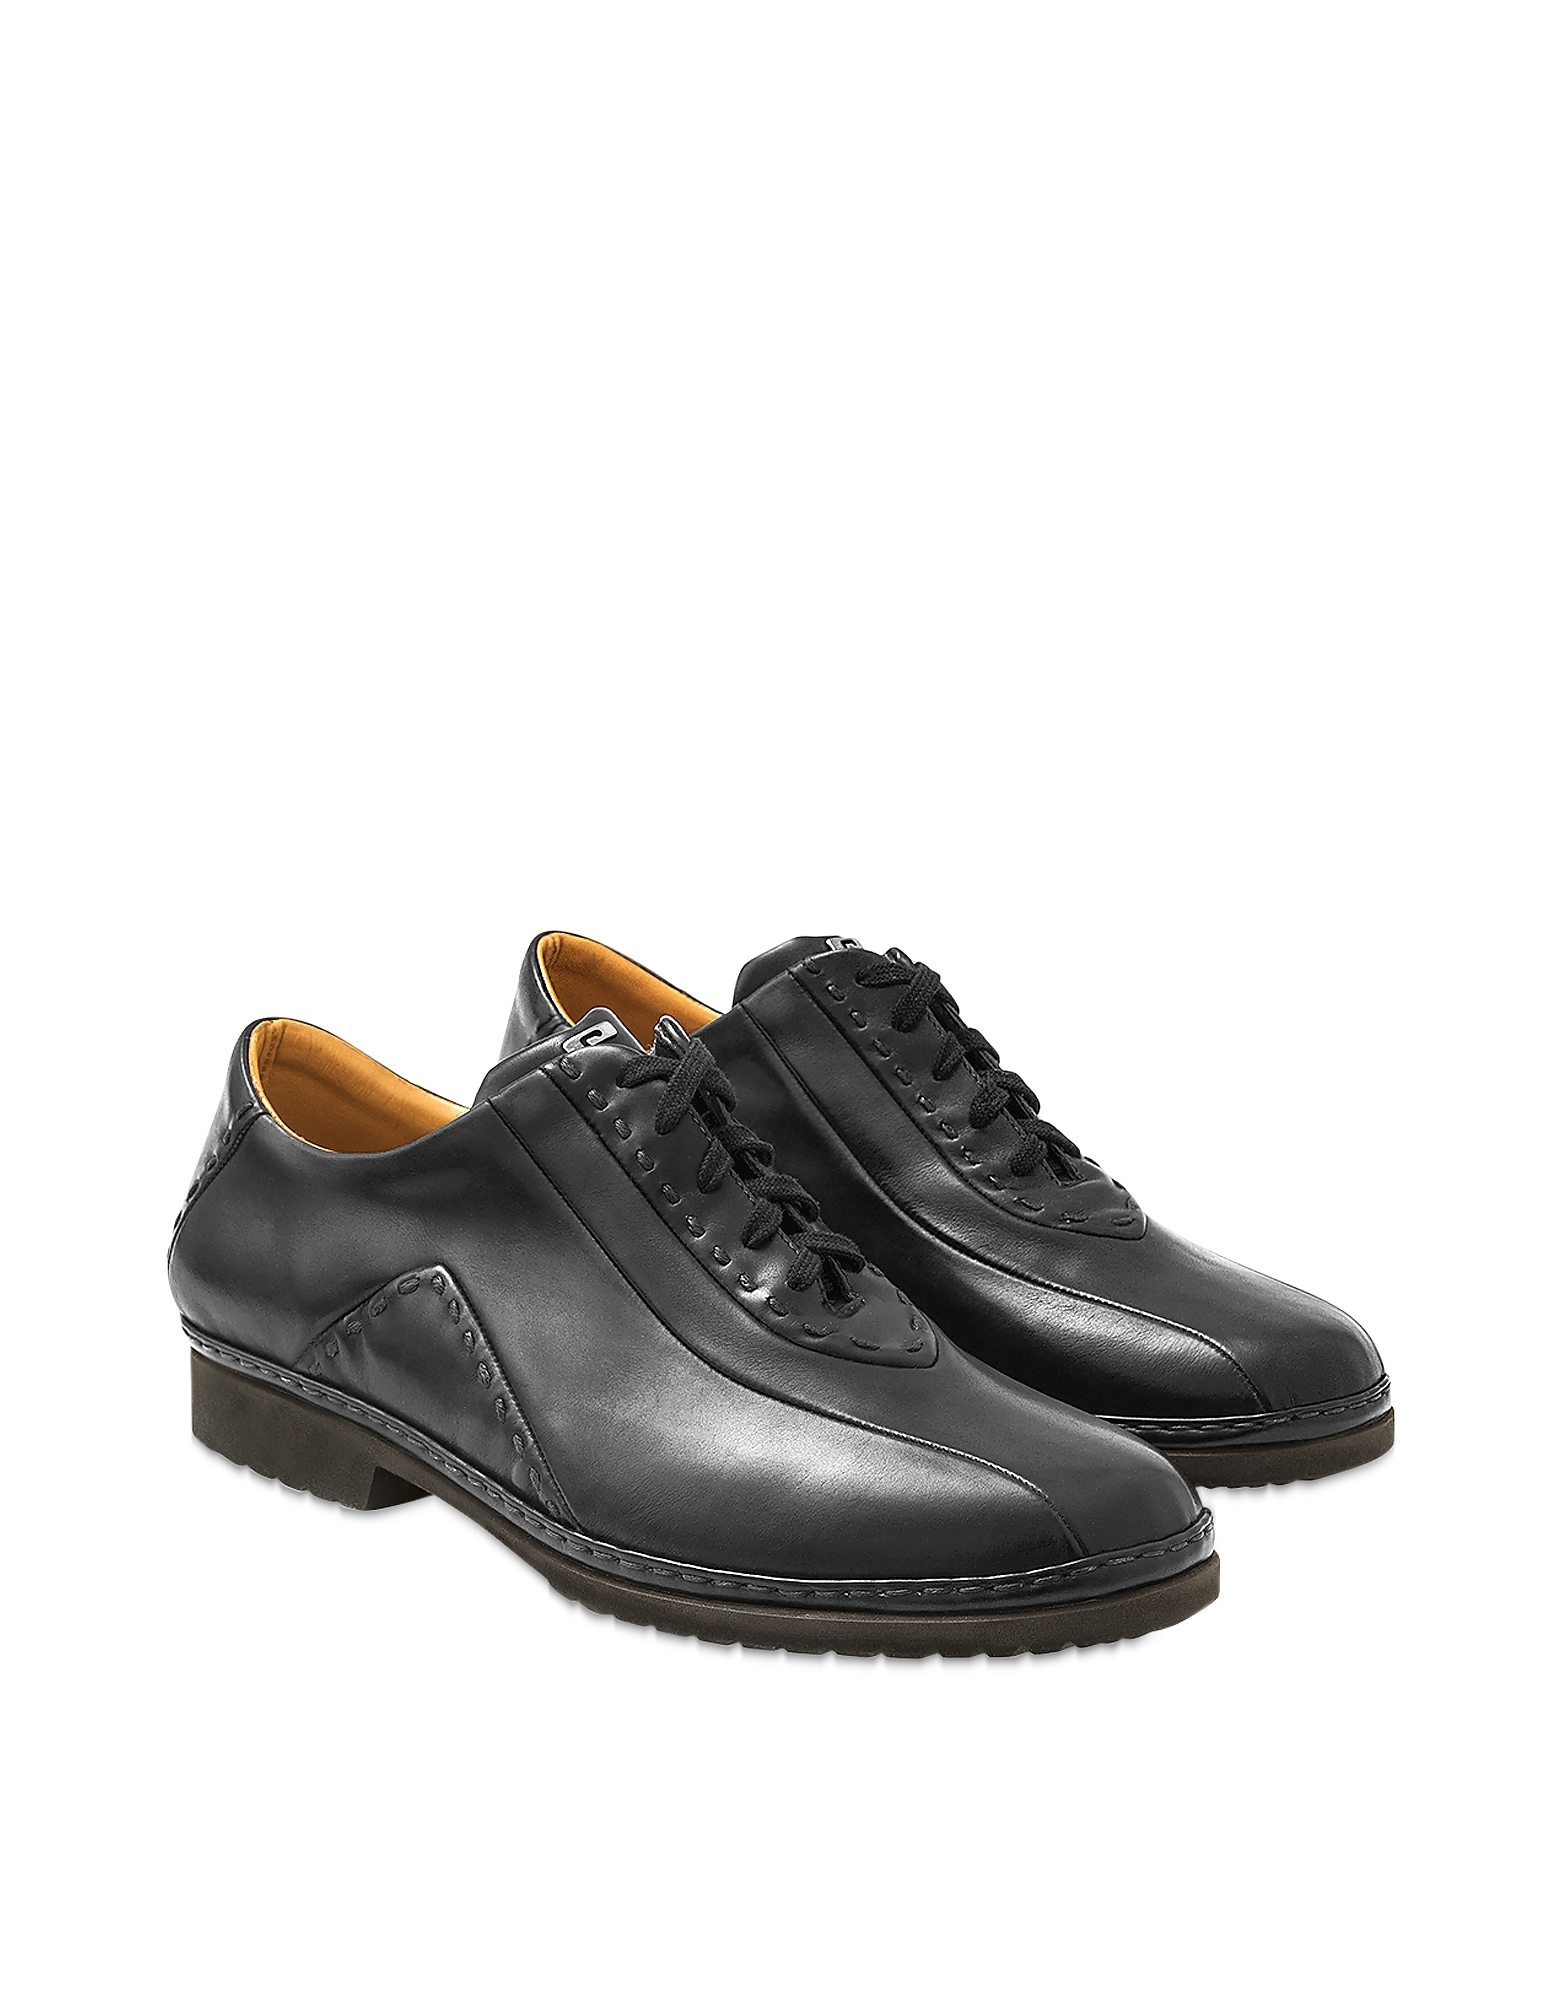 Black Italian Hand Made Calf Leather Lace-up Shoes